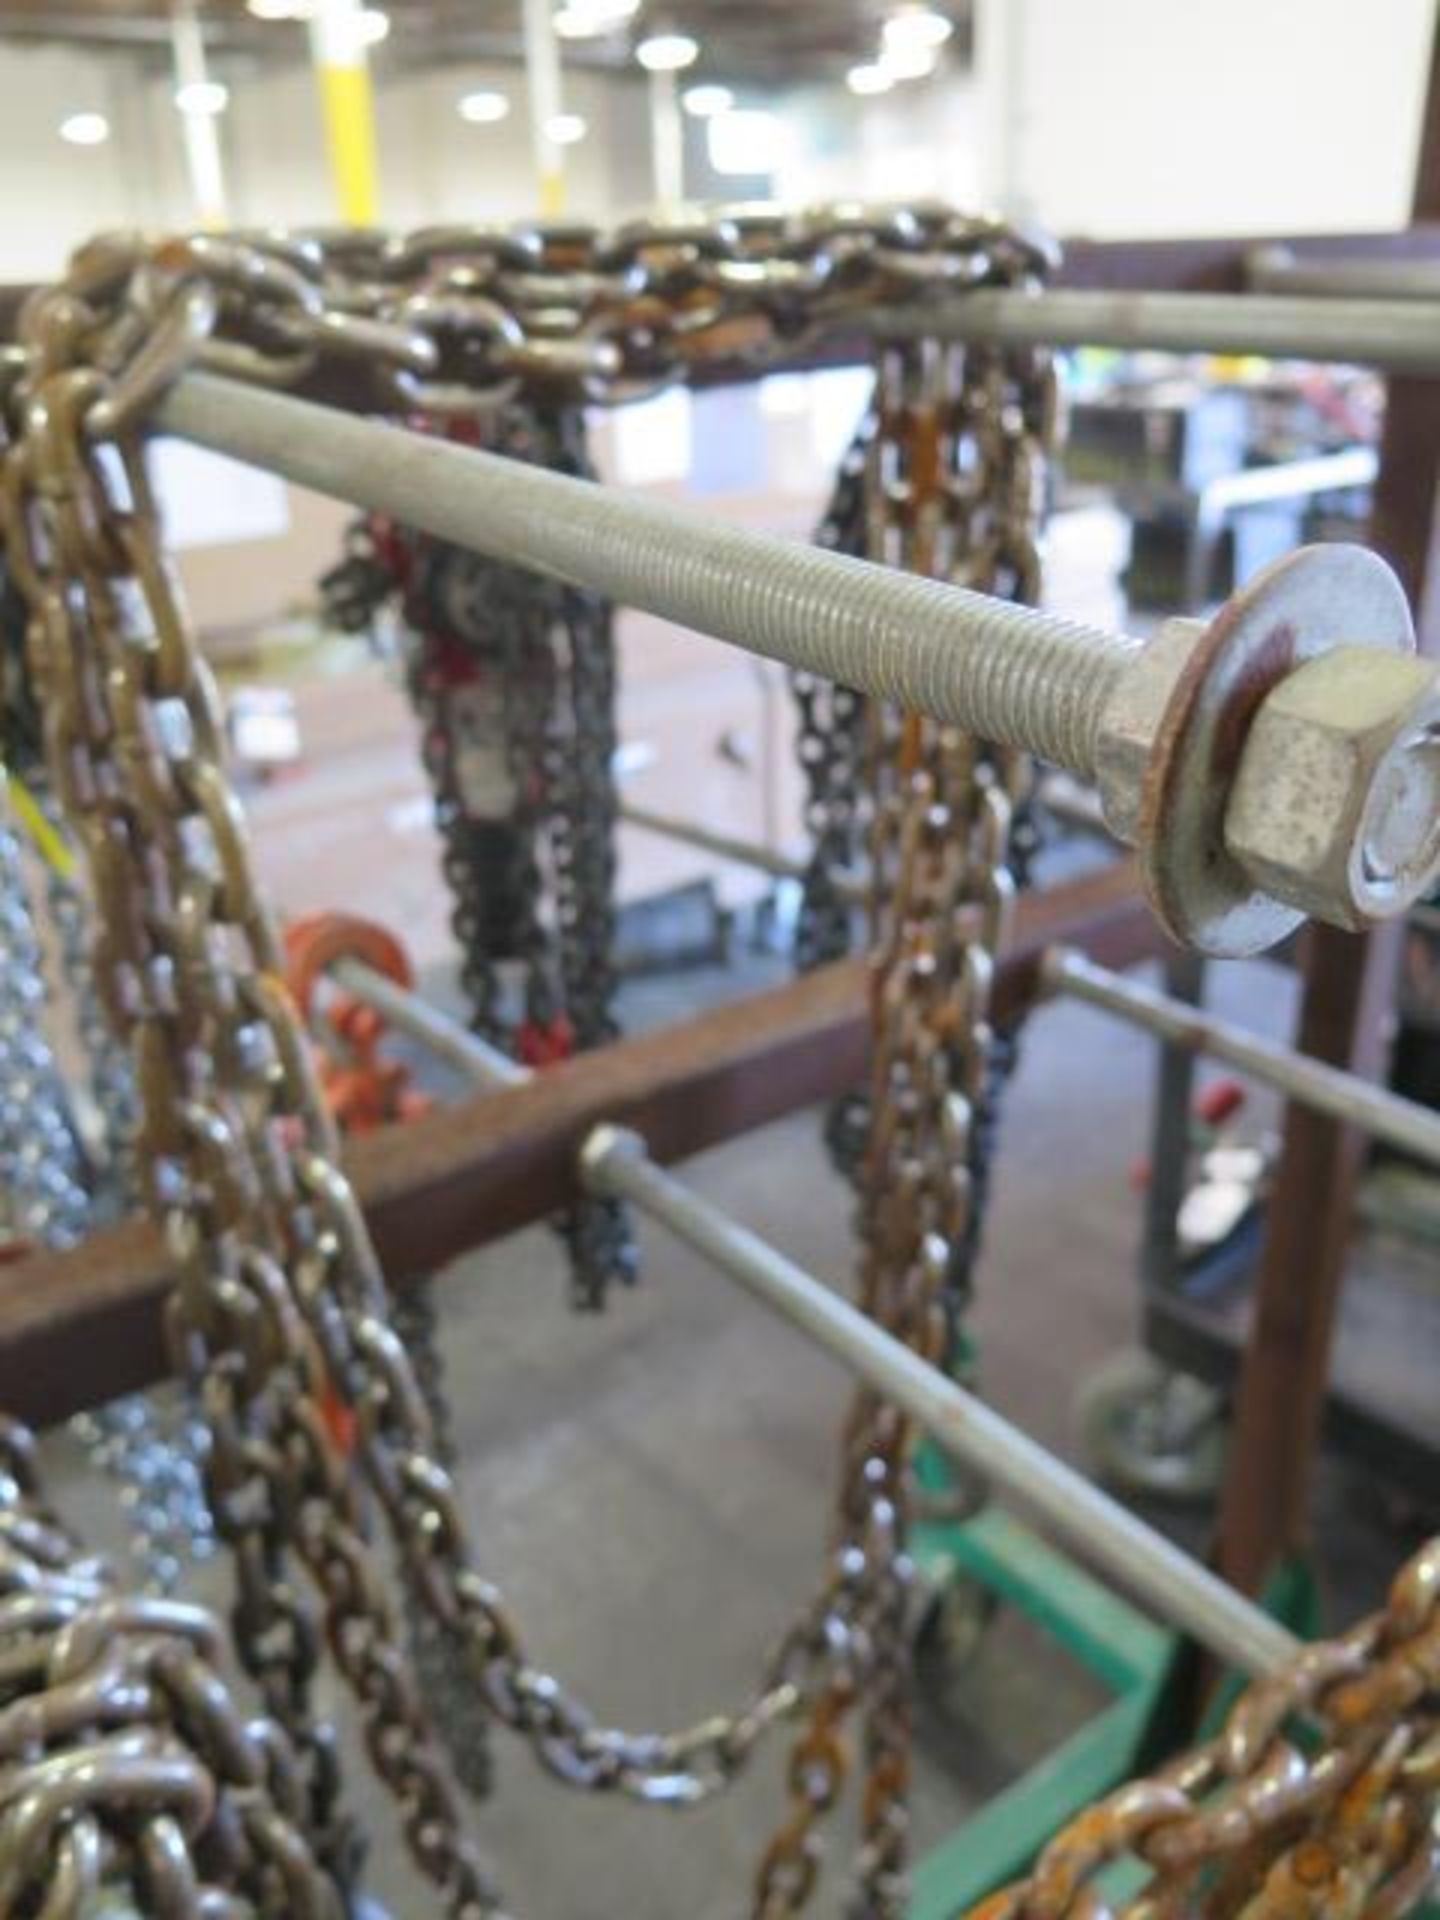 Chain Come-Alongs (4), Chain Tensioners (6) Chain and Cart (SOLD AS-IS - NO WARRANTY) - Image 11 of 11